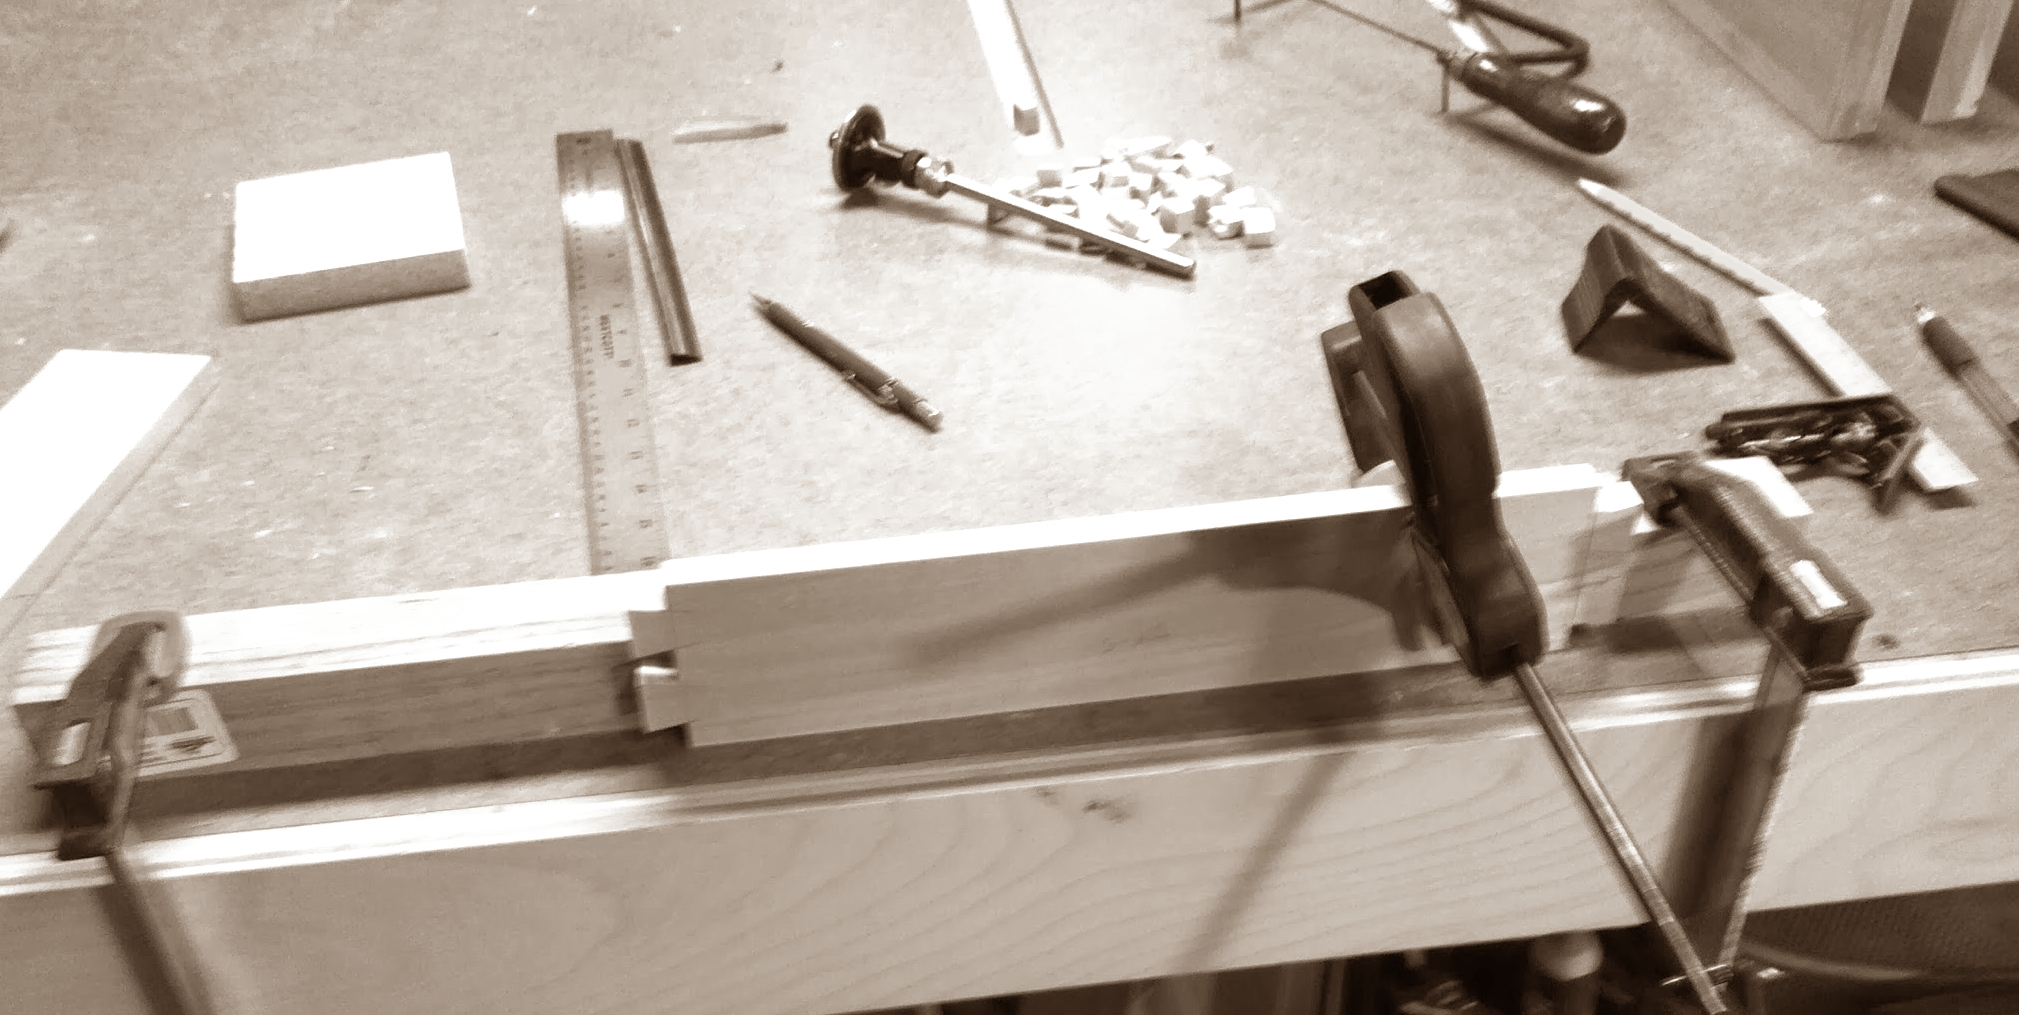 Jury-rigged bracket to hold drawer sides while cutting sides